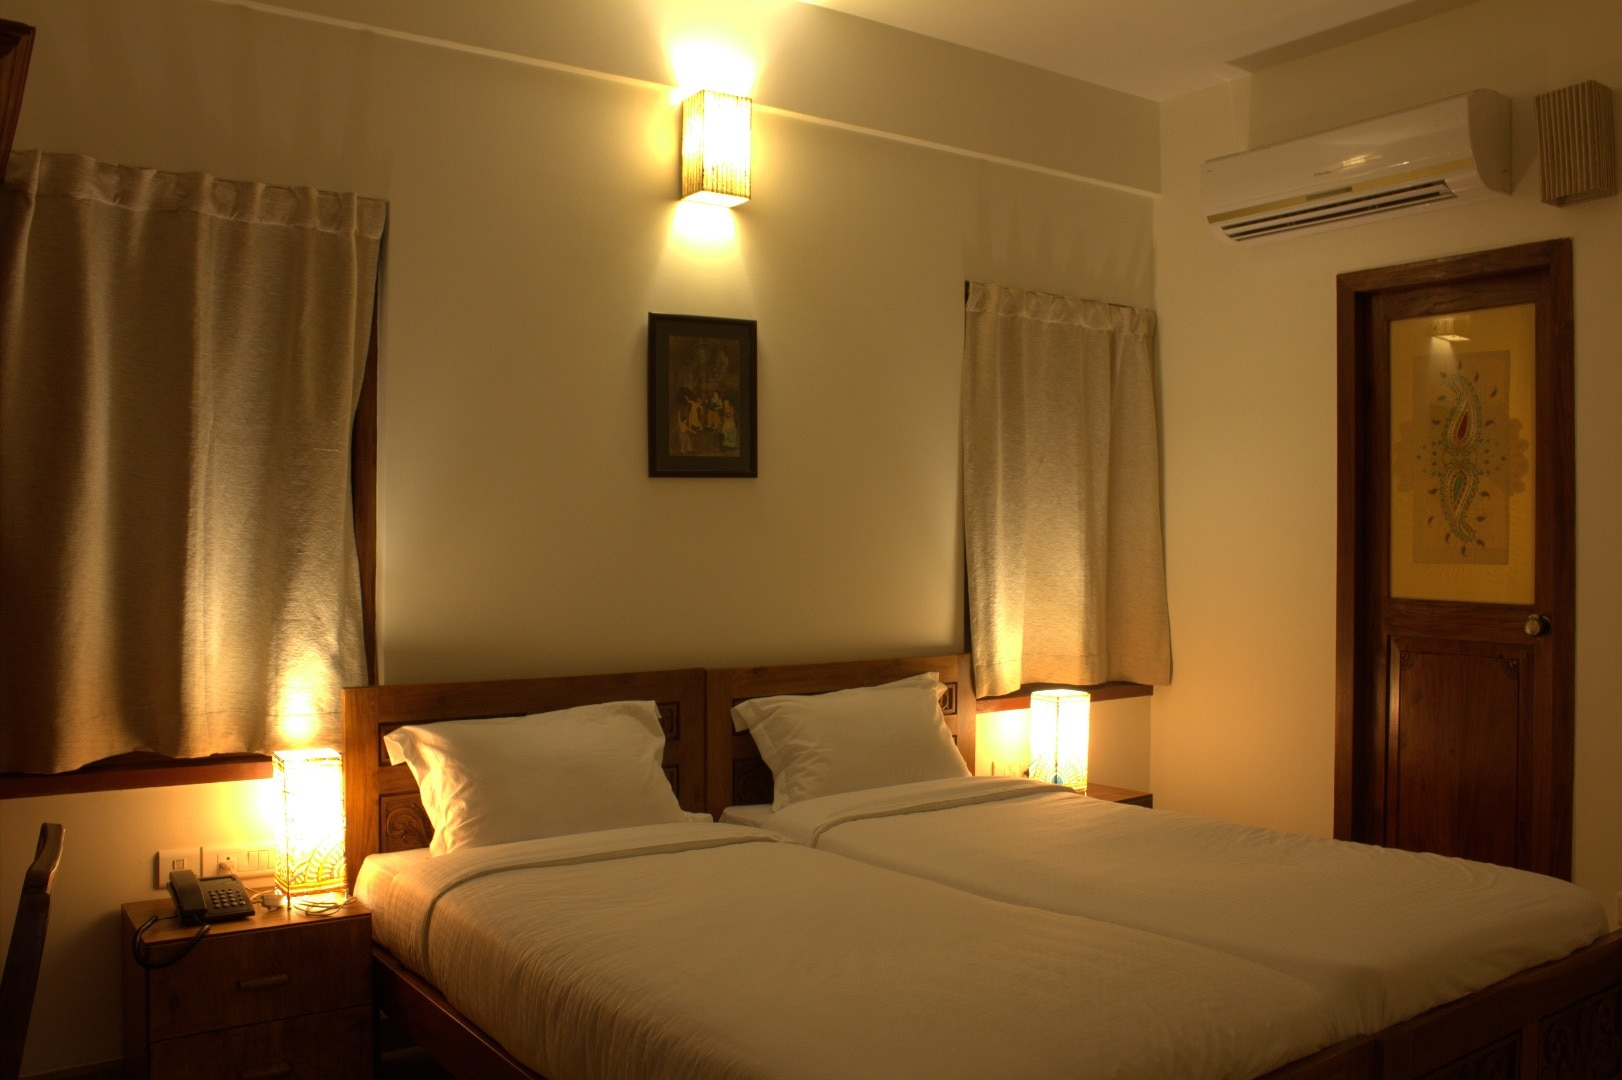 NisarghaServiceApartments